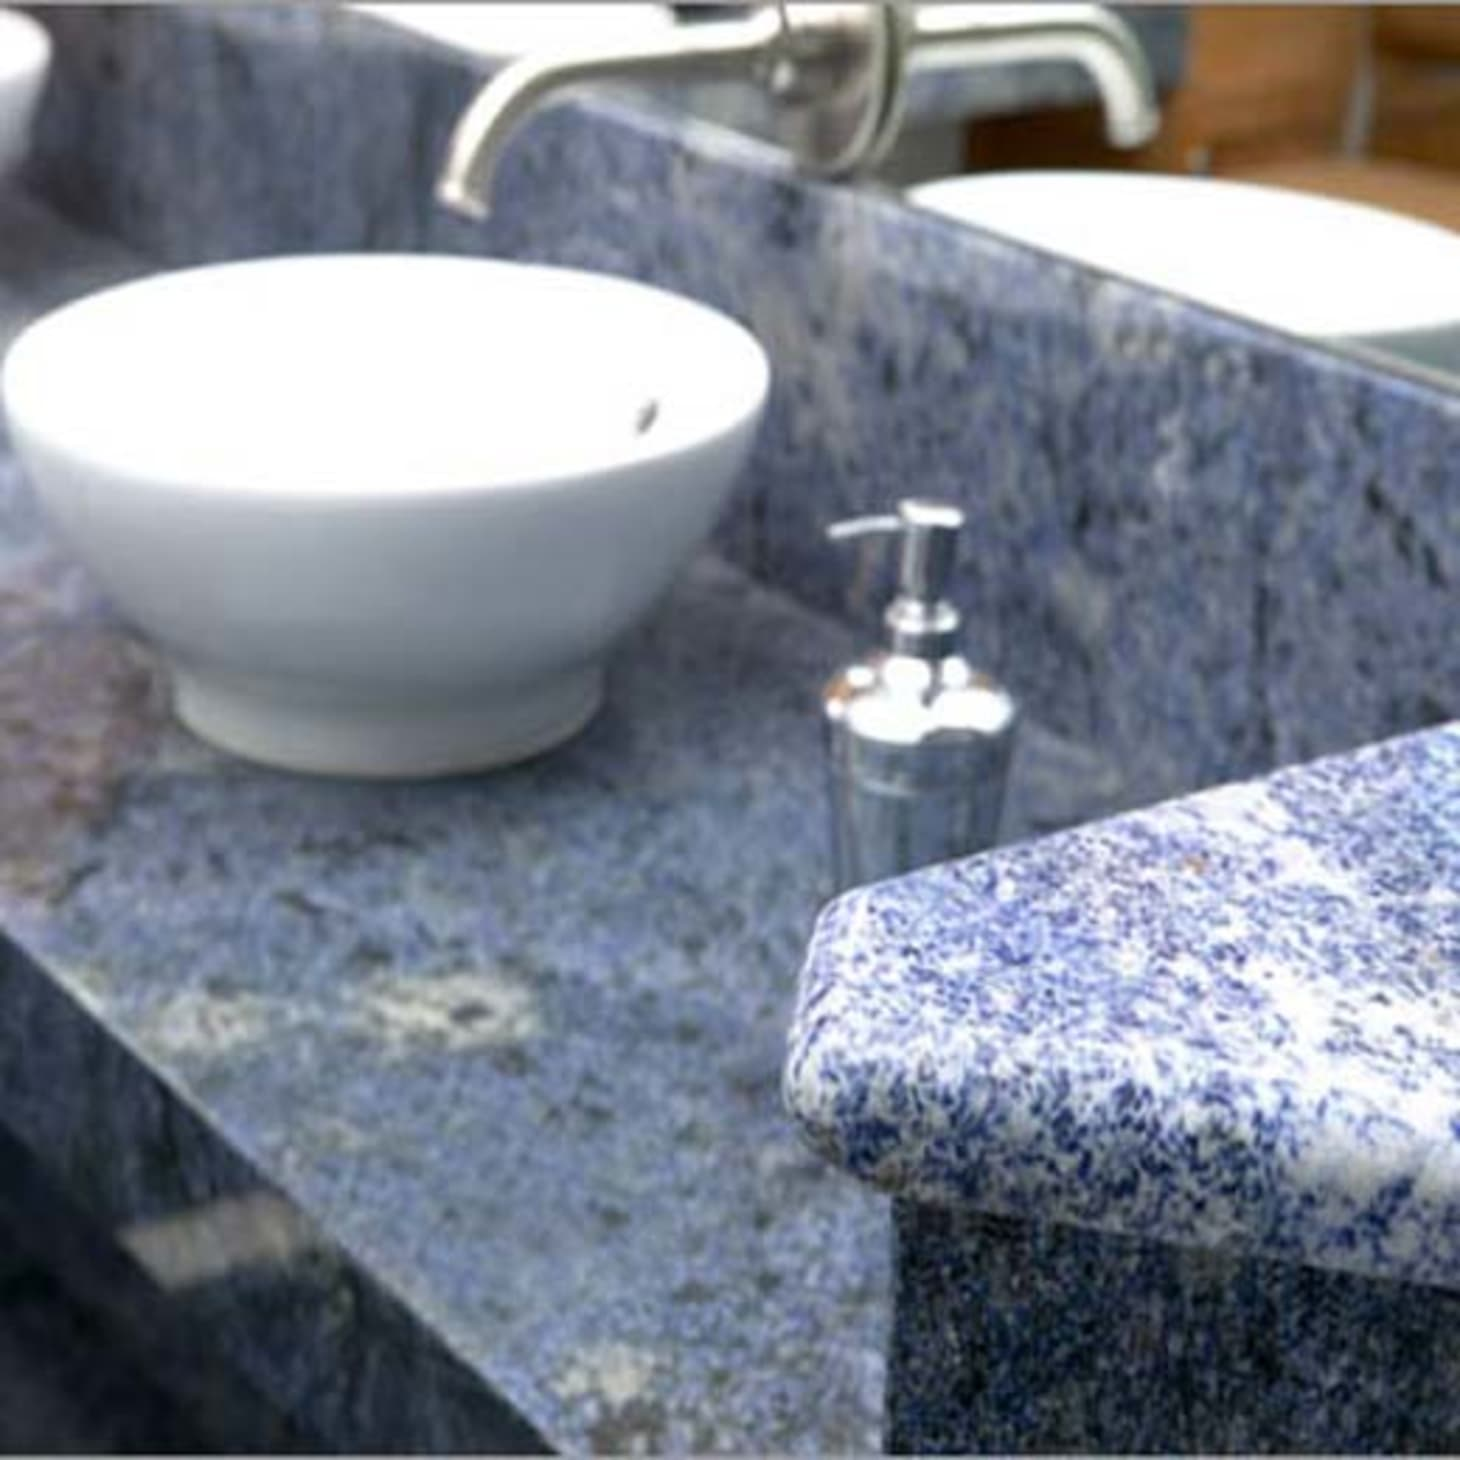 Considering Blue Bahia Granite? Let These Interiors Sway You